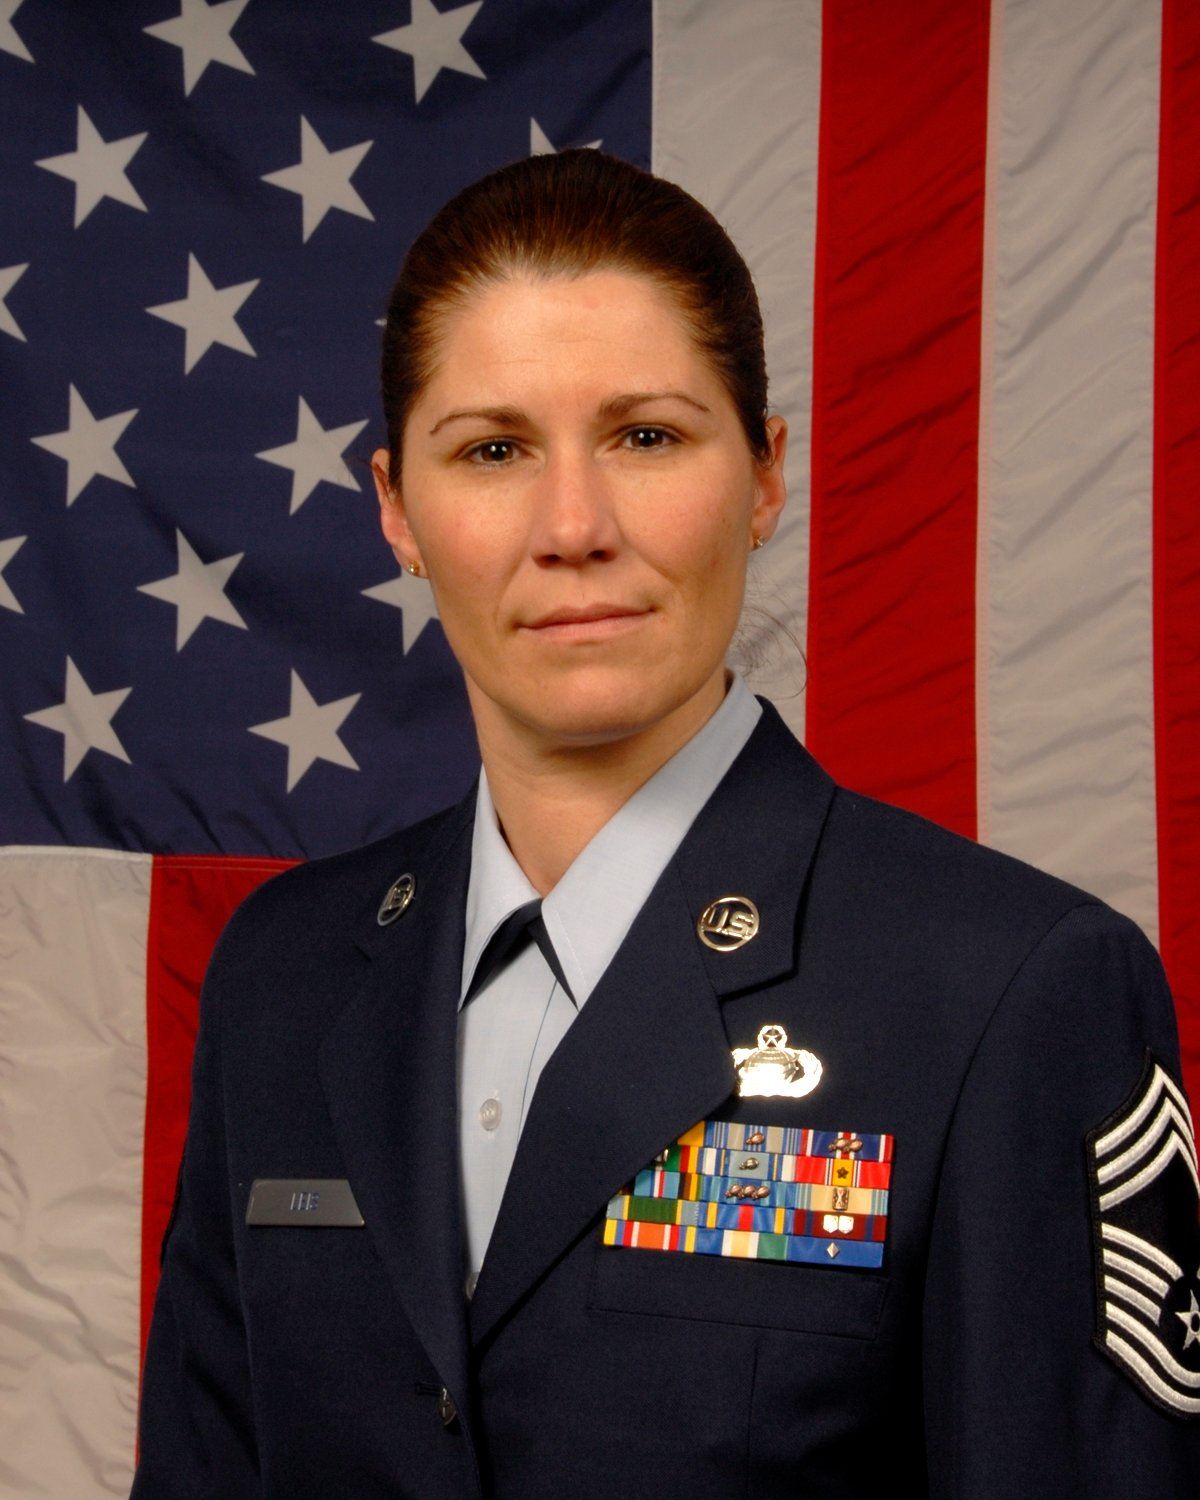 Chief Master Sgt. Marcelle Leis enlisted in the United States Air Force and New York Air National Guard in 1989.